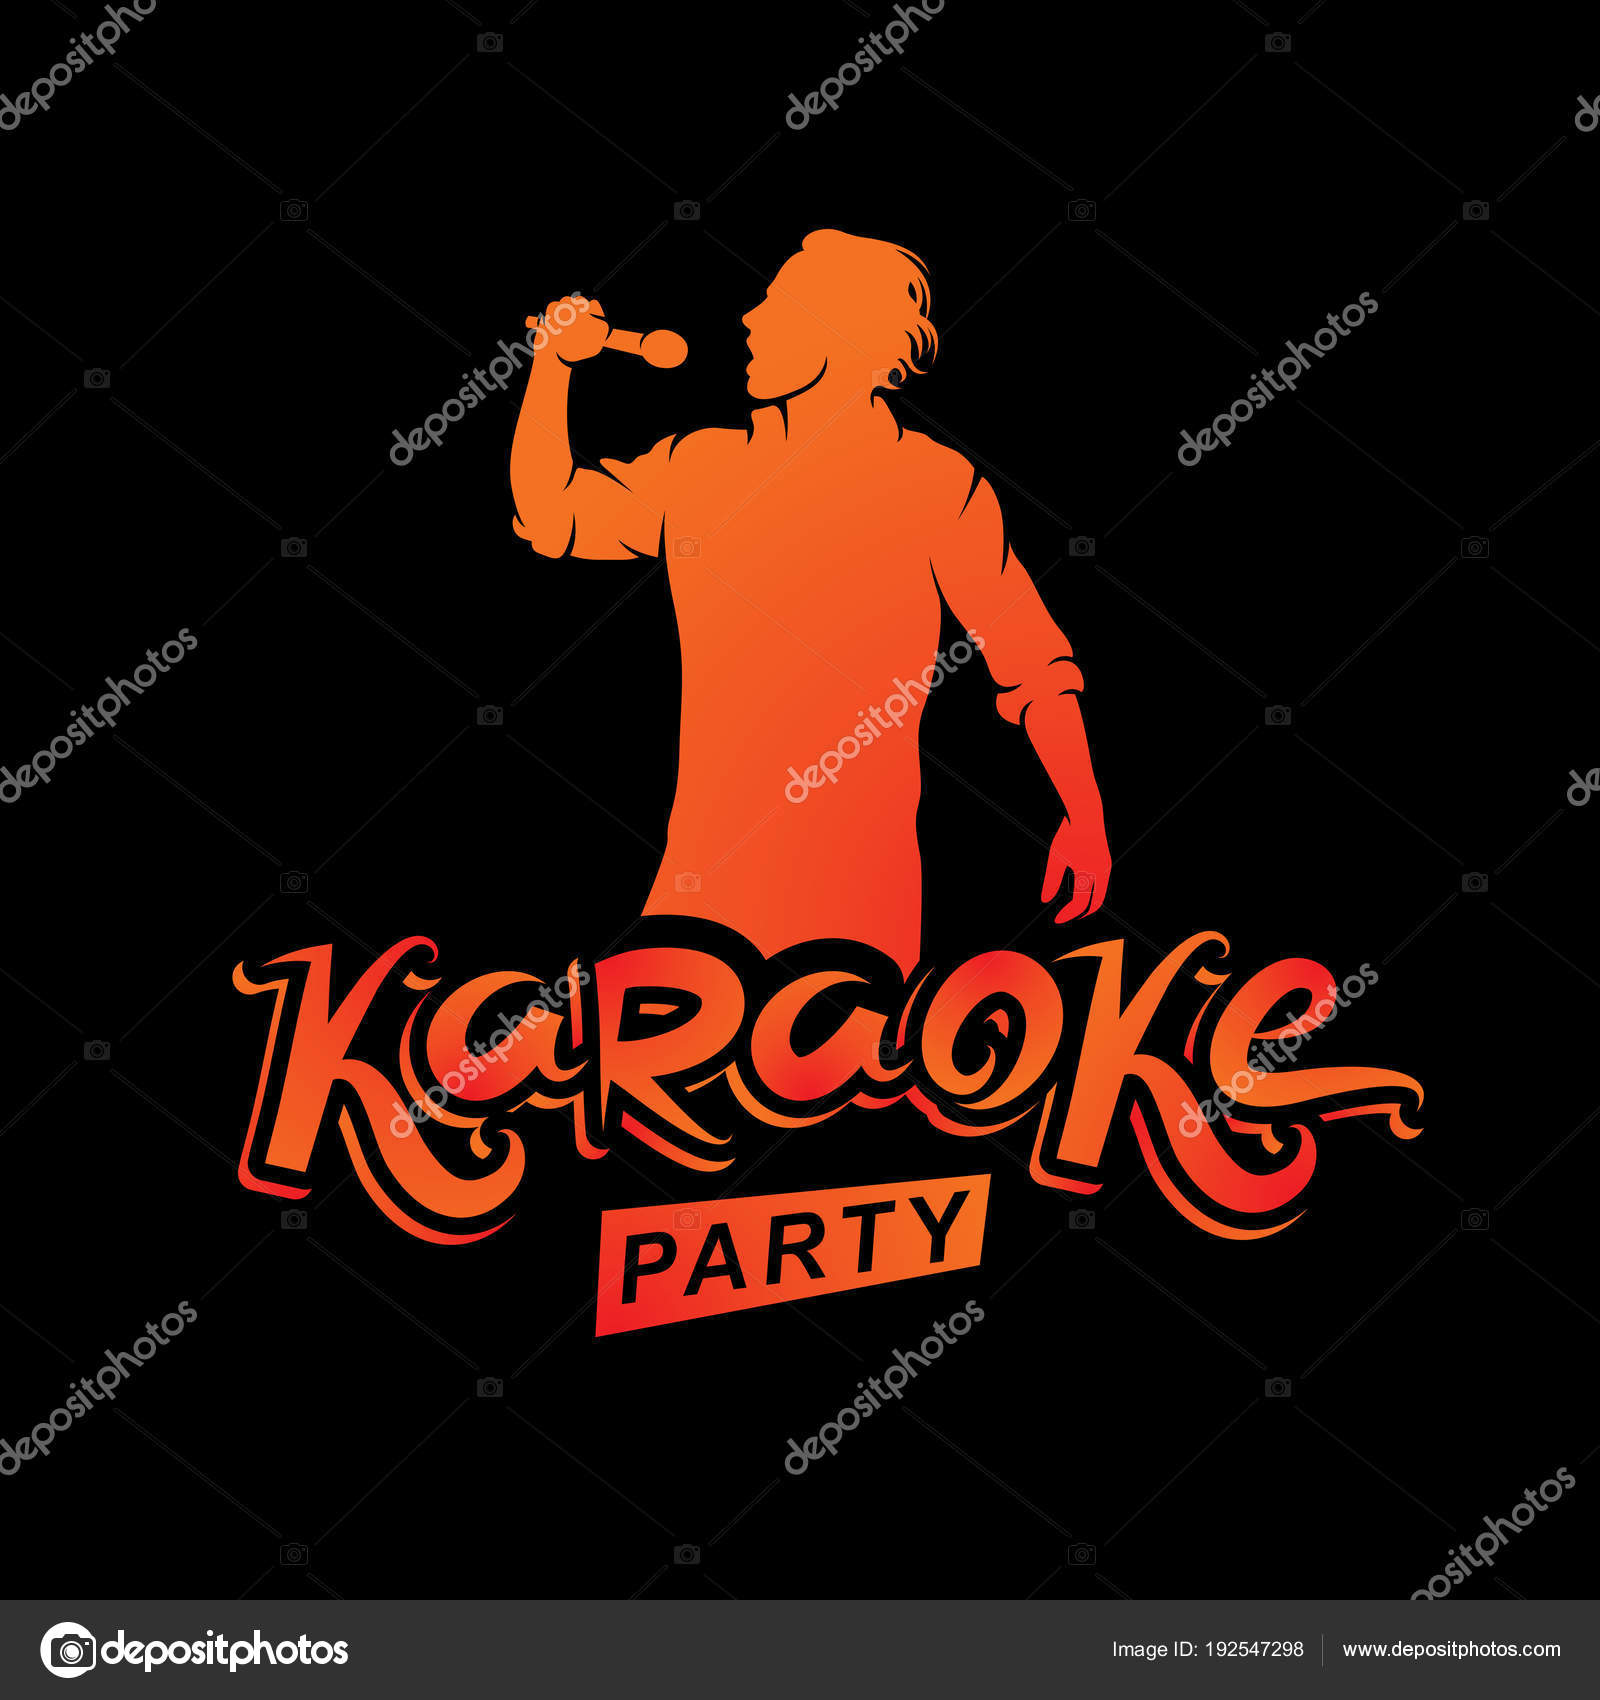 Karaoke Party Invitation Poster Black Background — Stock Vector ...